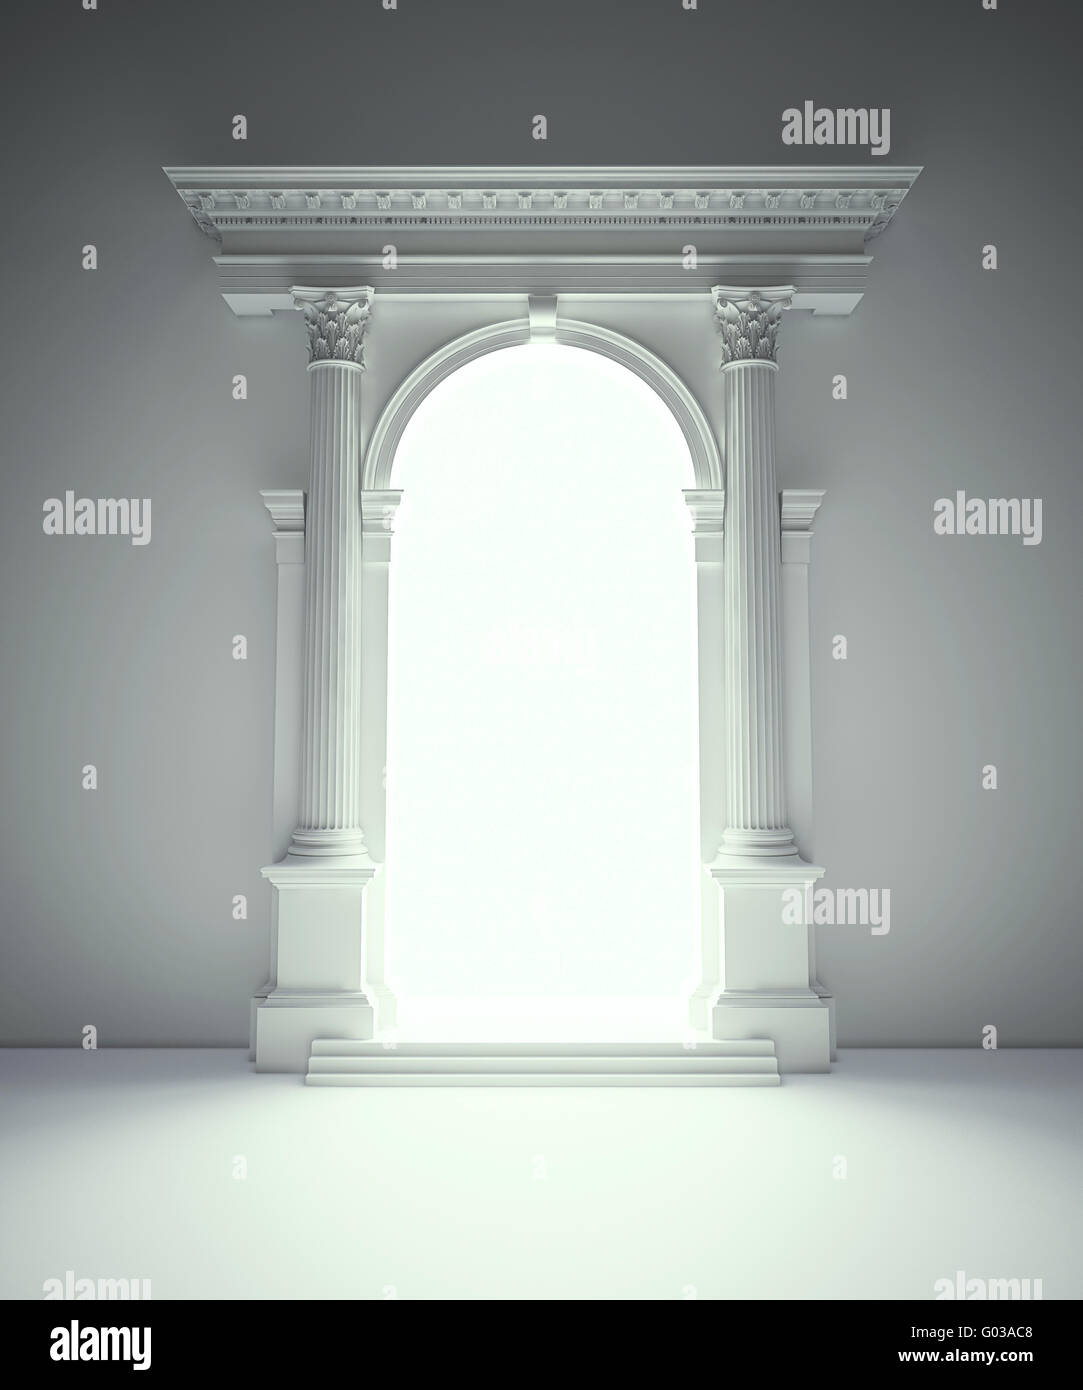 Classical architecture portal with corinthian columns, arcades and entablature - Stock Image